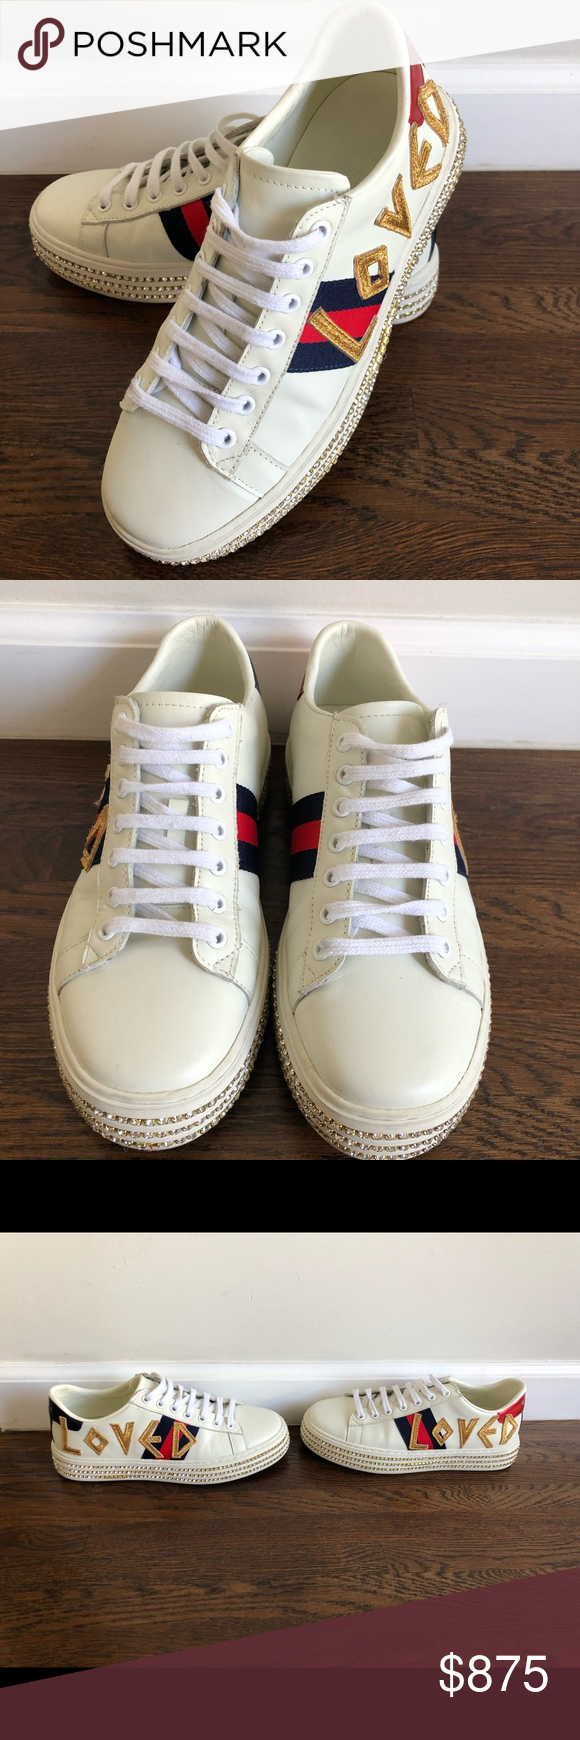 Gucci Platform Ace LOVED sneakers with